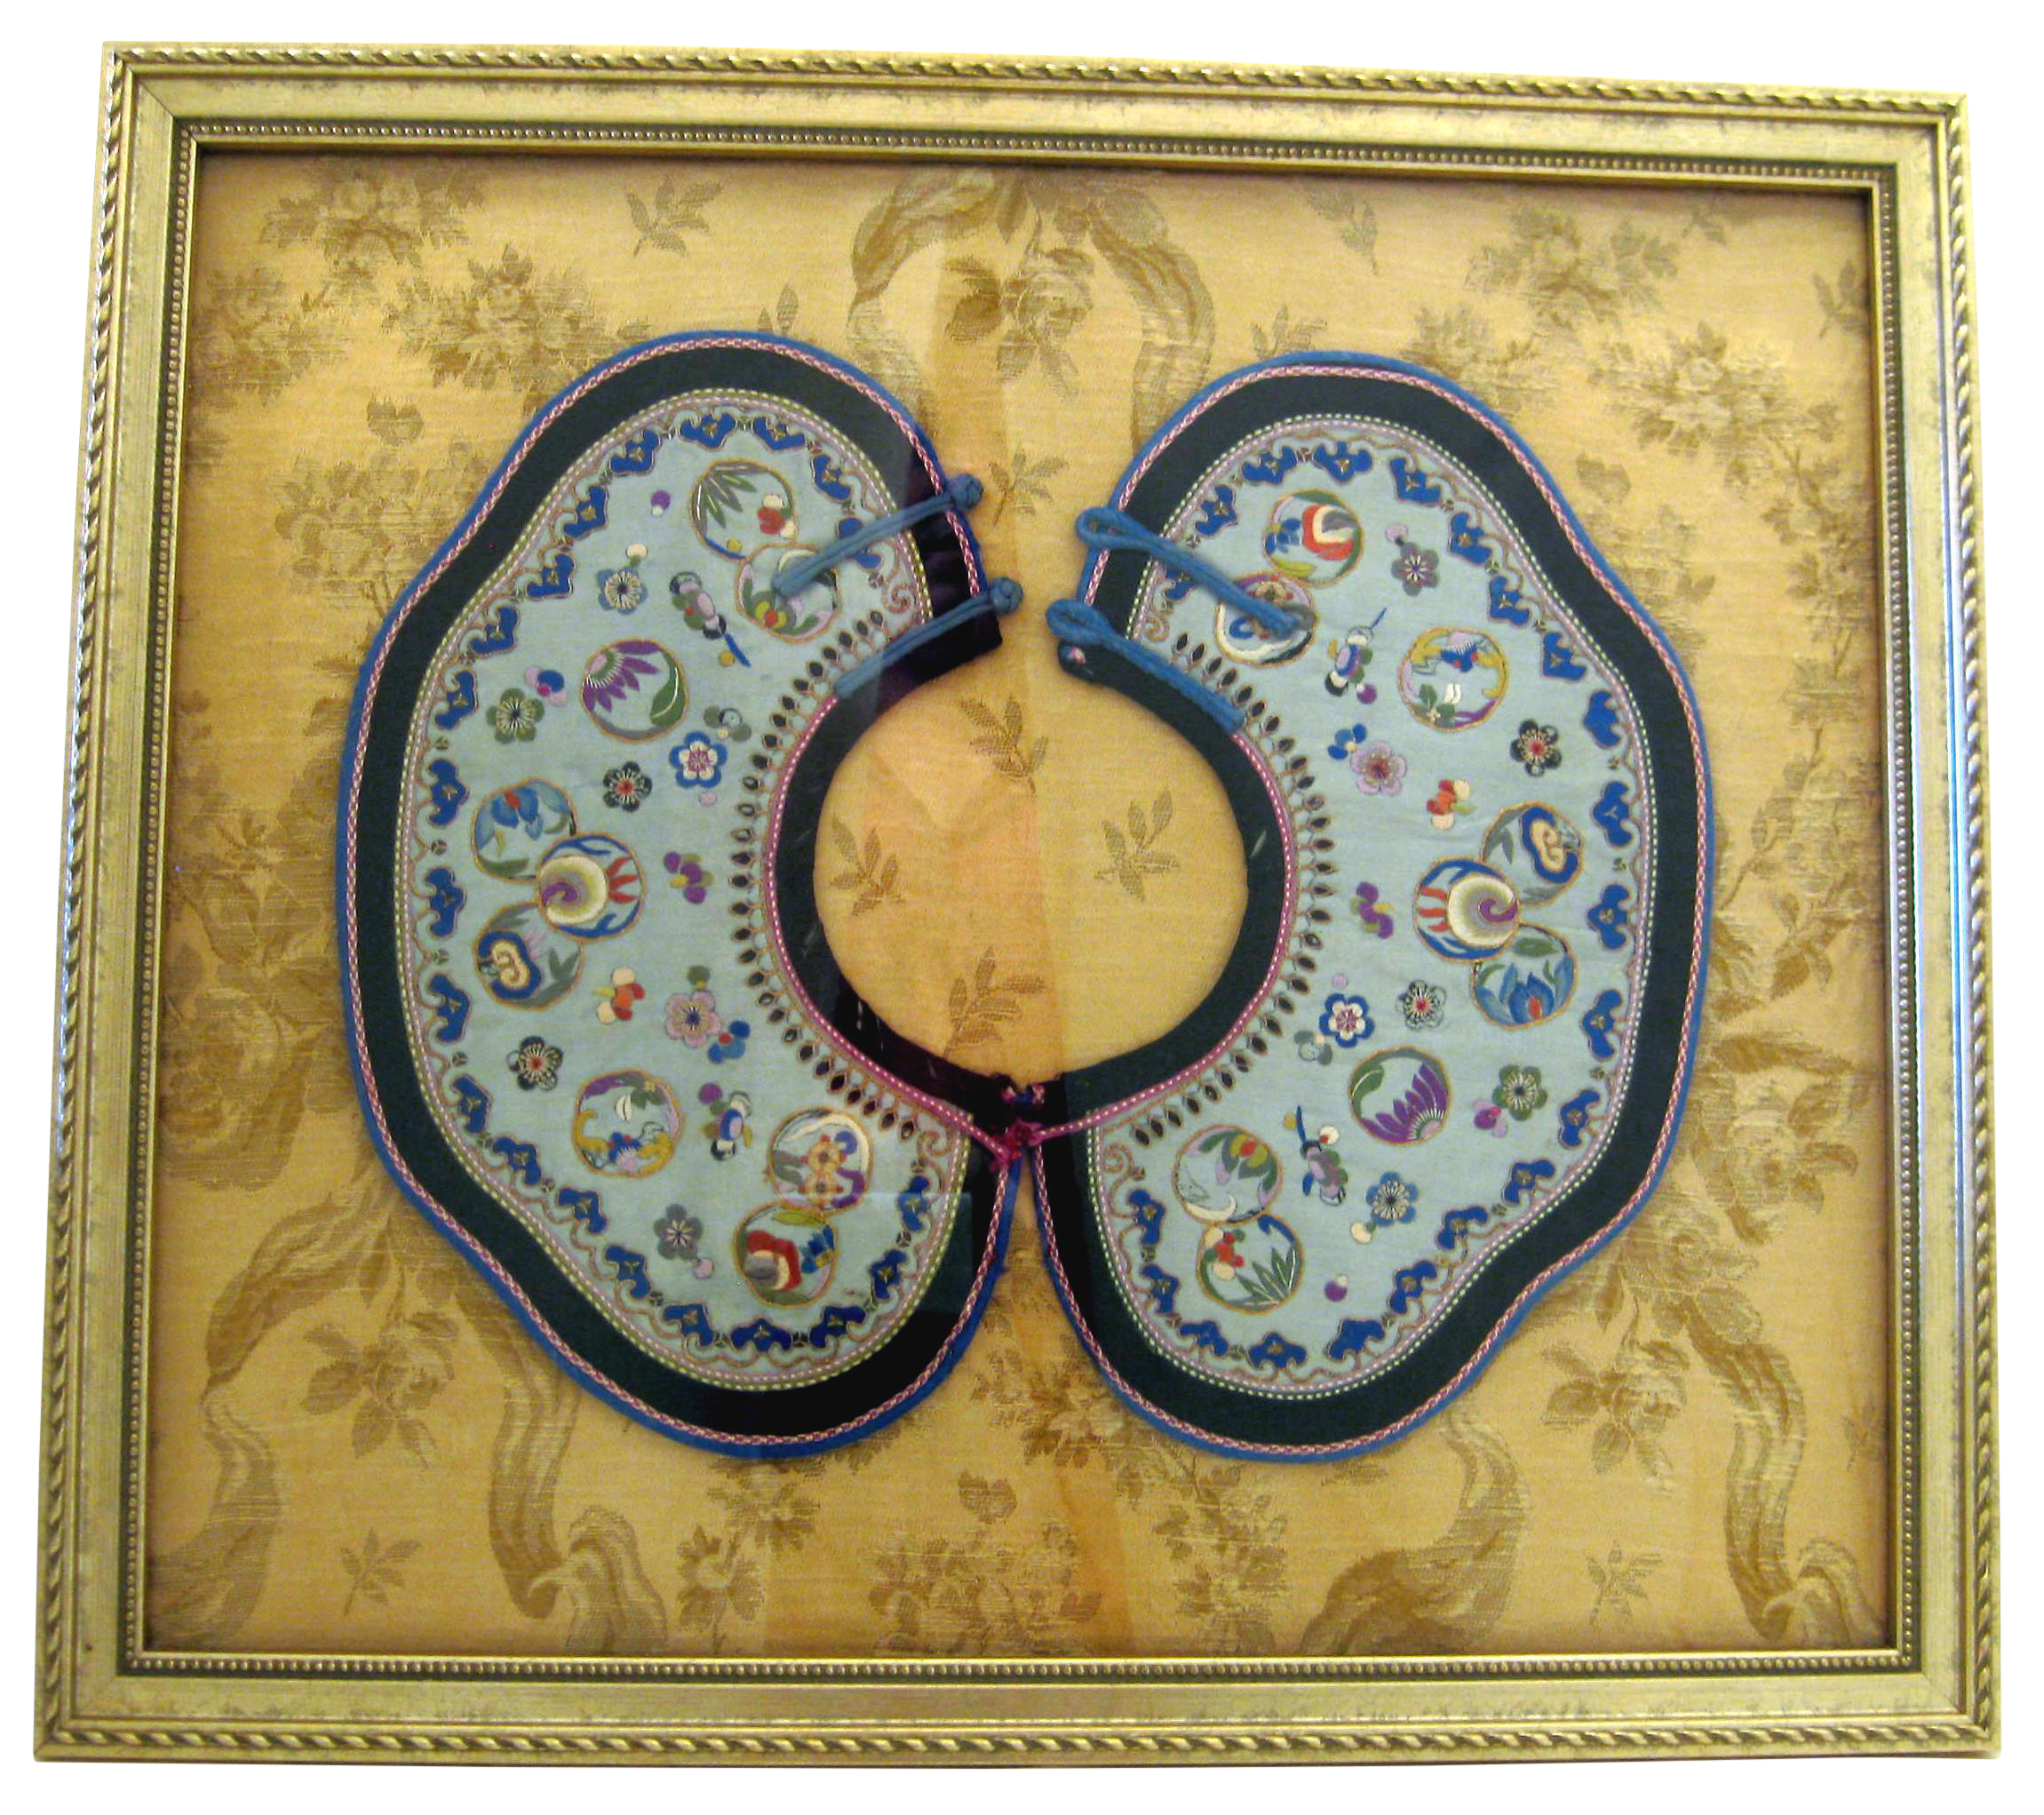 Framed Antique Embroidered Chinese Collar   Chairish